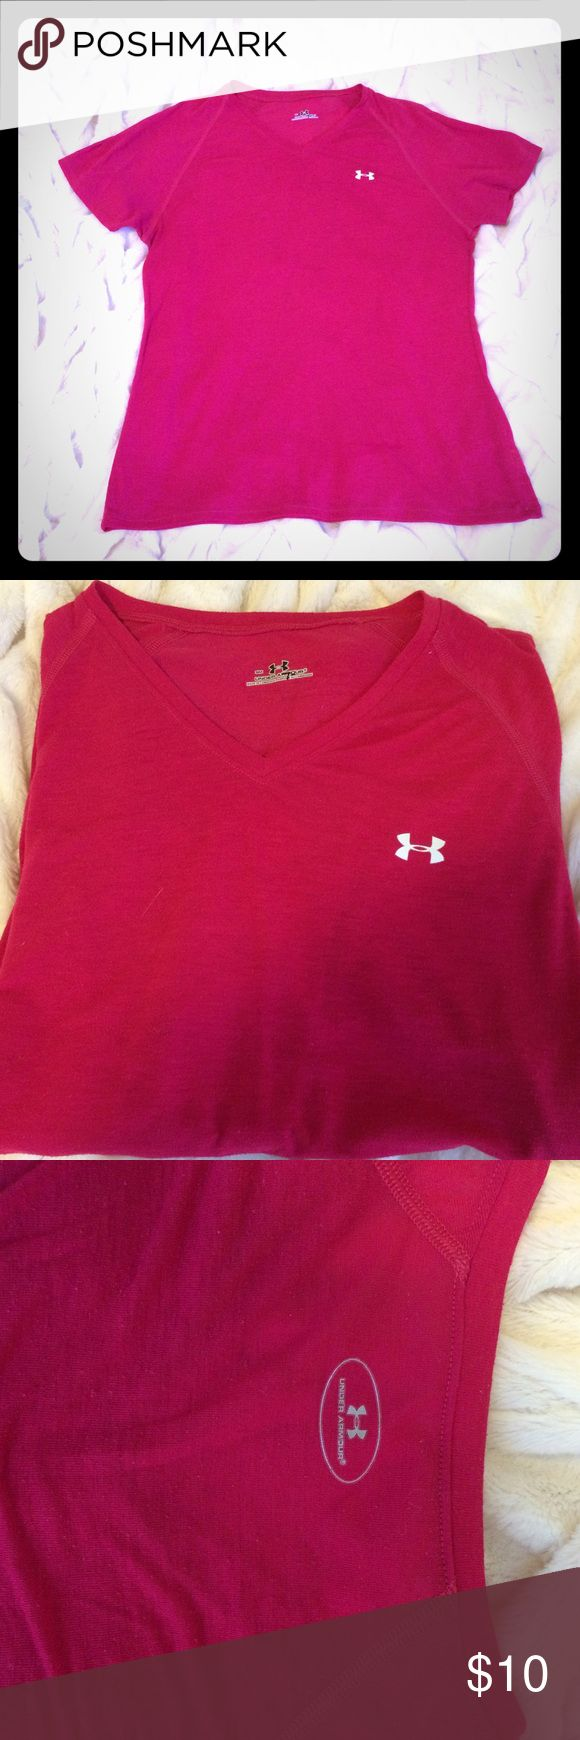 Under Armour short sleeve top Pink Under Armour top. 95% polyester, 5% elastine. Under Armour Tops Tees - Short Sleeve